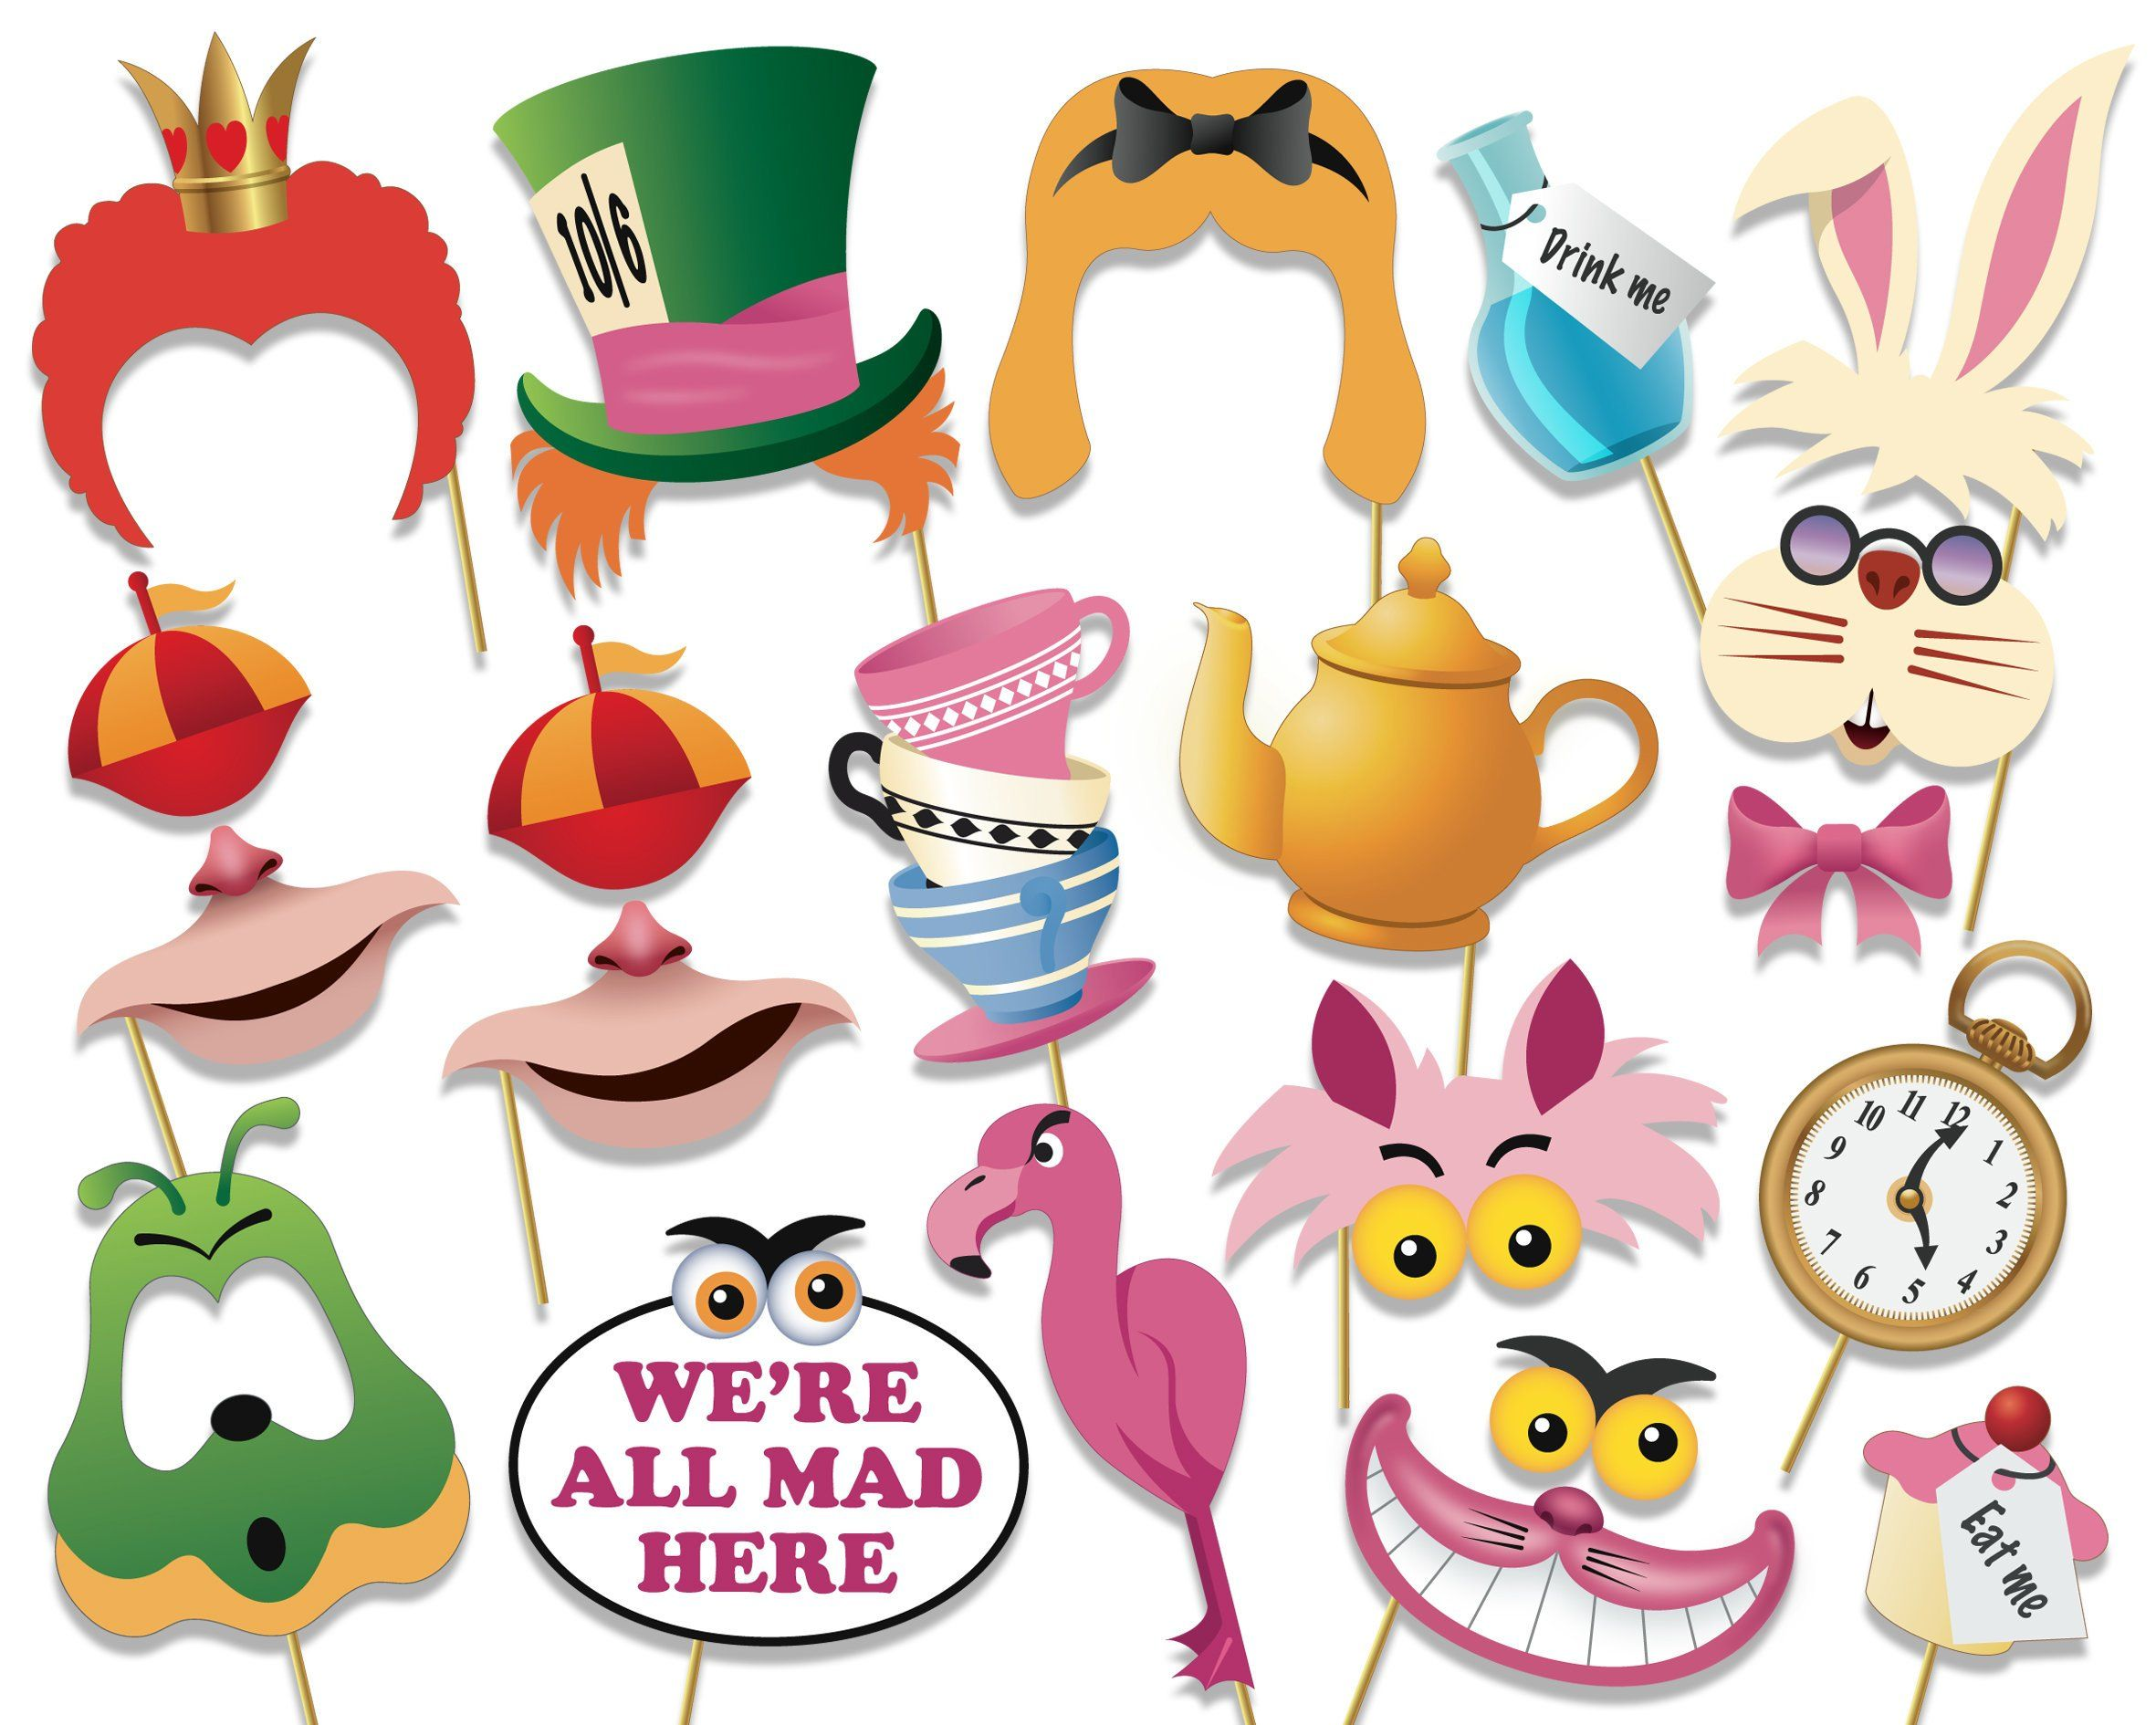 Alice In Wonderland Party Photo Booth Props Set Printable Pdf Mad Hatters Te Alice In Wonderland Decorations Alice In Wonderland Printables Mad Hatter Party